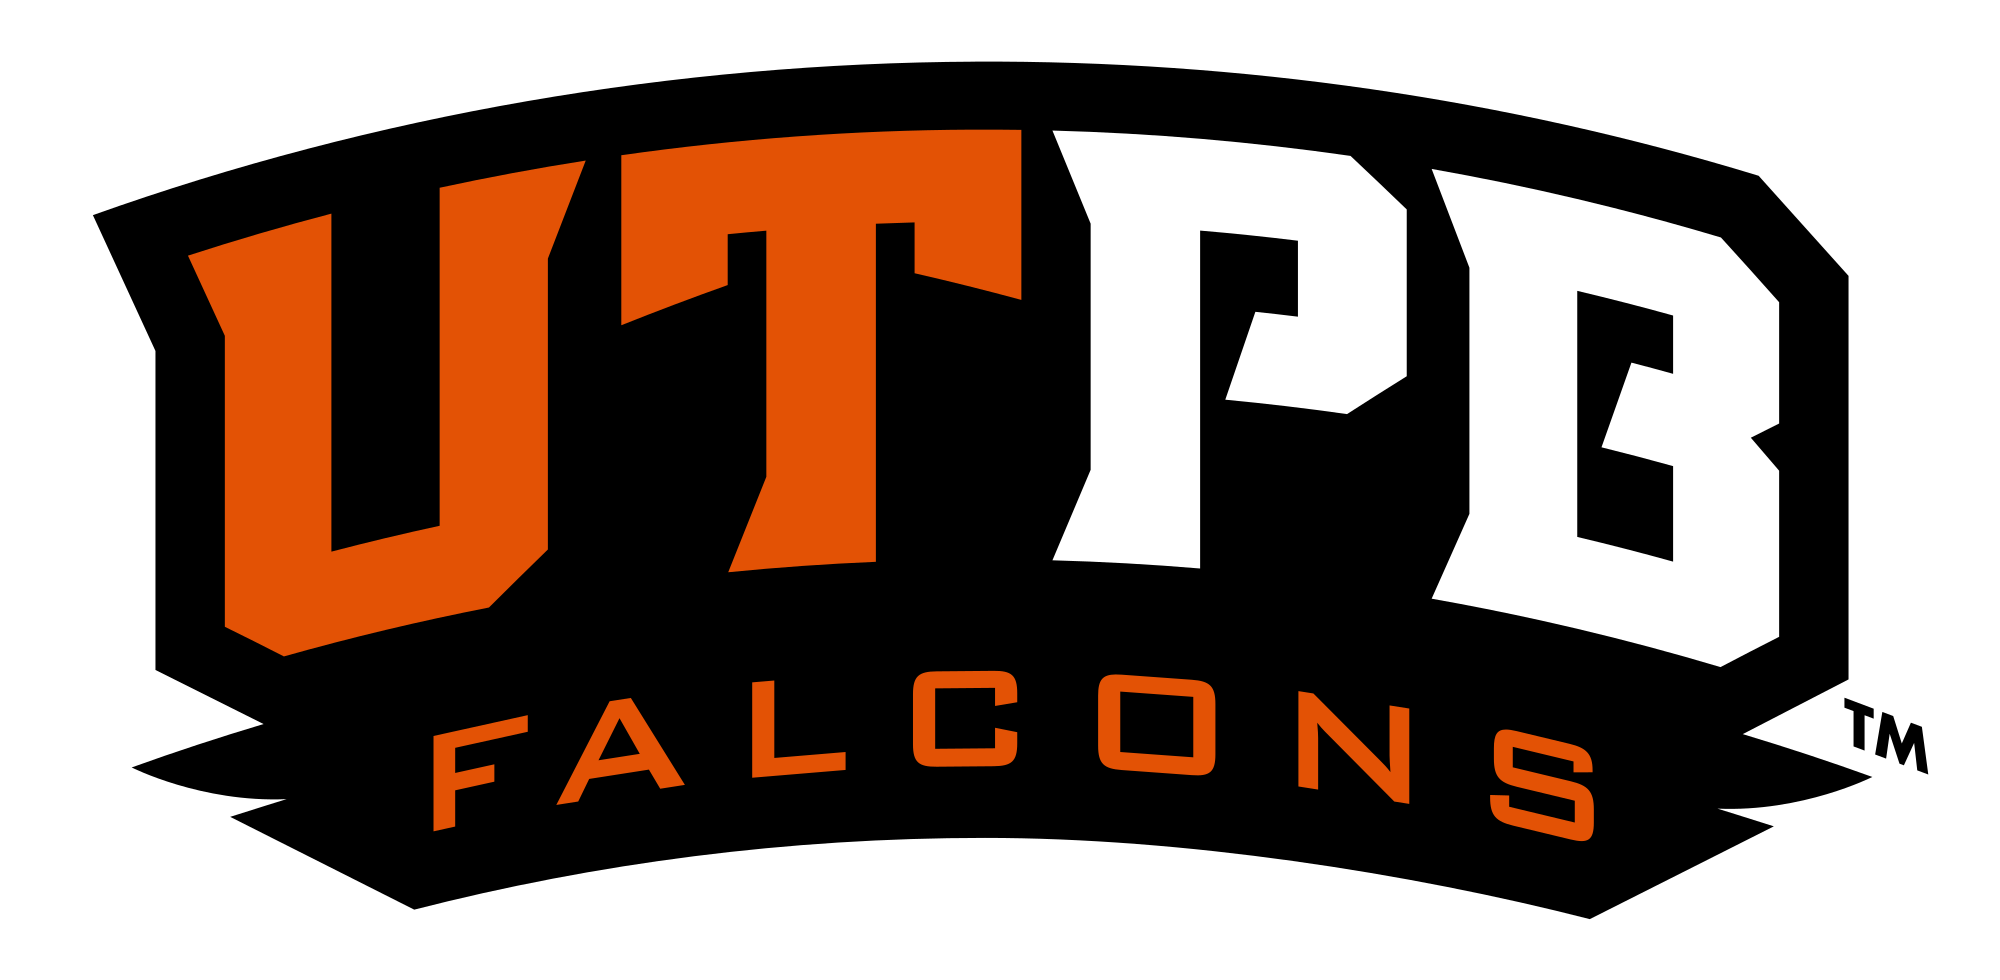 Falcons svg. File texas permian basin vector free stock